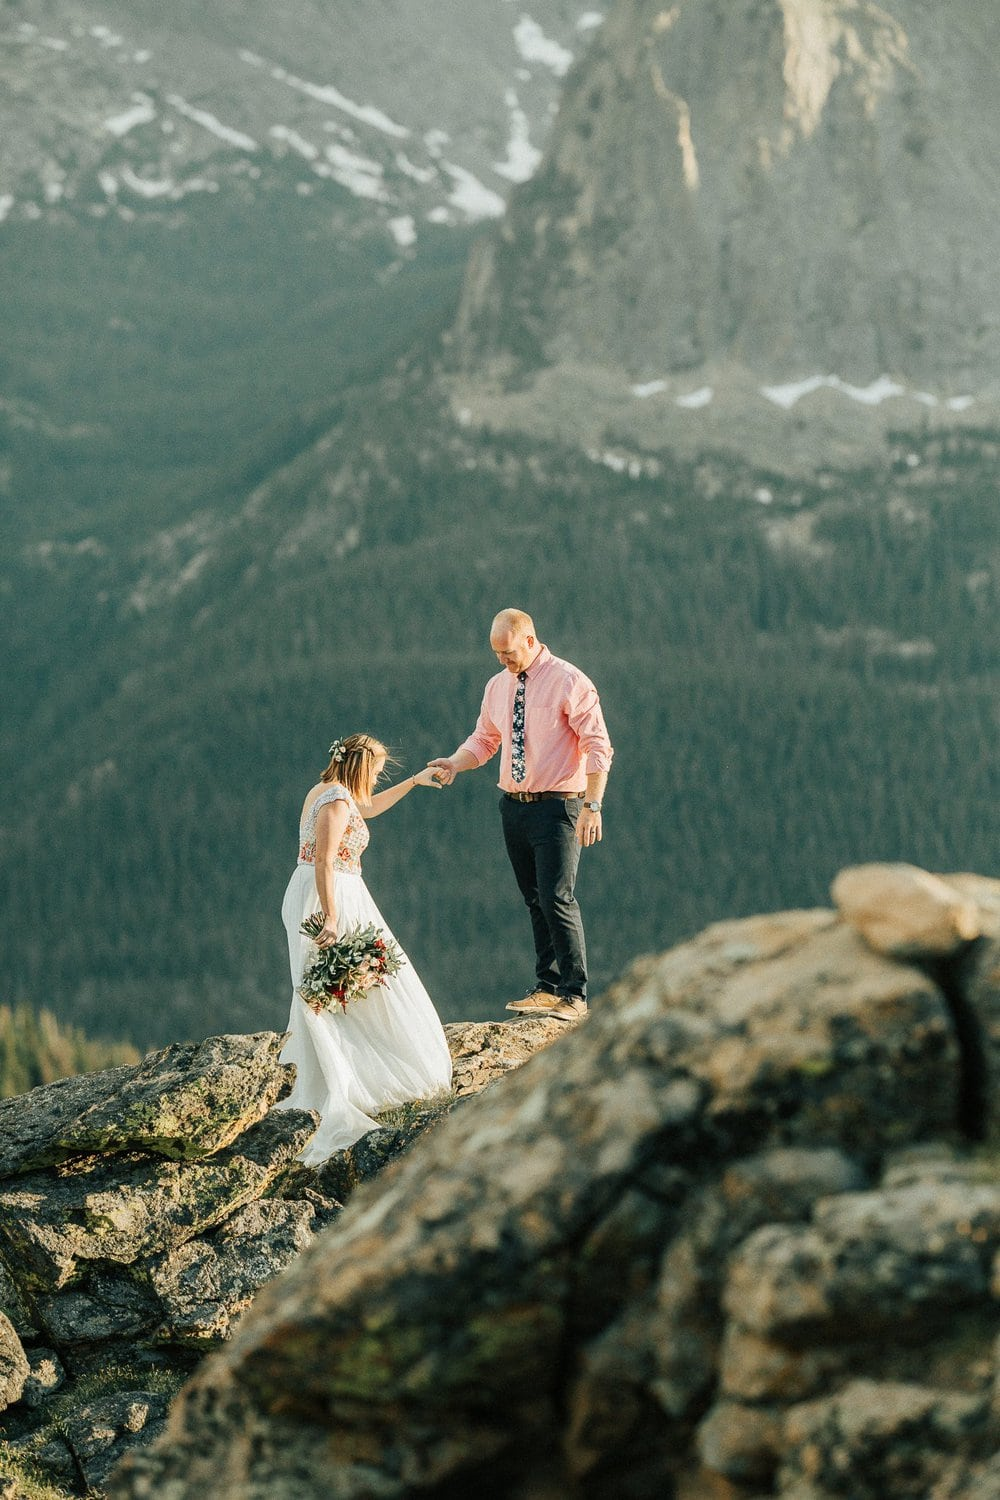 Rocky Mountain National park, Trail Ridge Road, Vows Renewal Session, Colorado Mountain Wedding Photographer, 3 M Curve Anniversary, Justyna E Butler